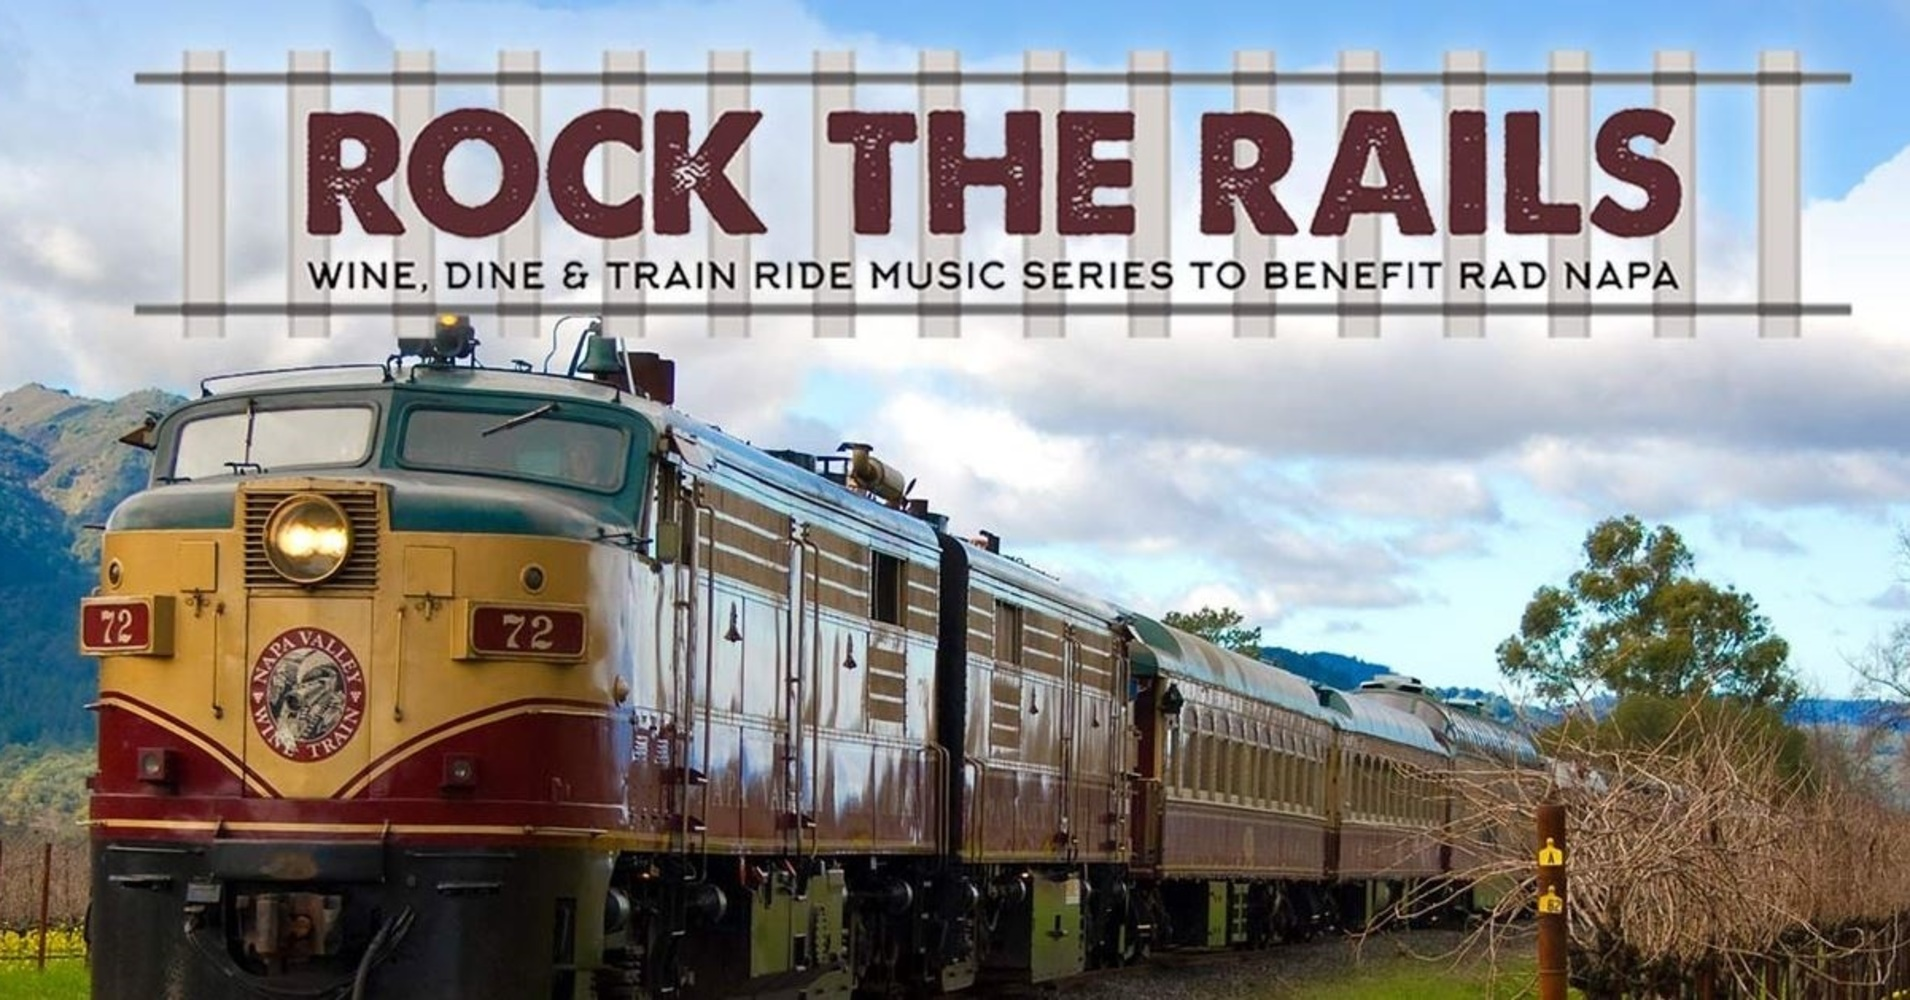 Napa Valley Wine Train Set To Rock The Rails Benefit To Support Rail Arts District photo